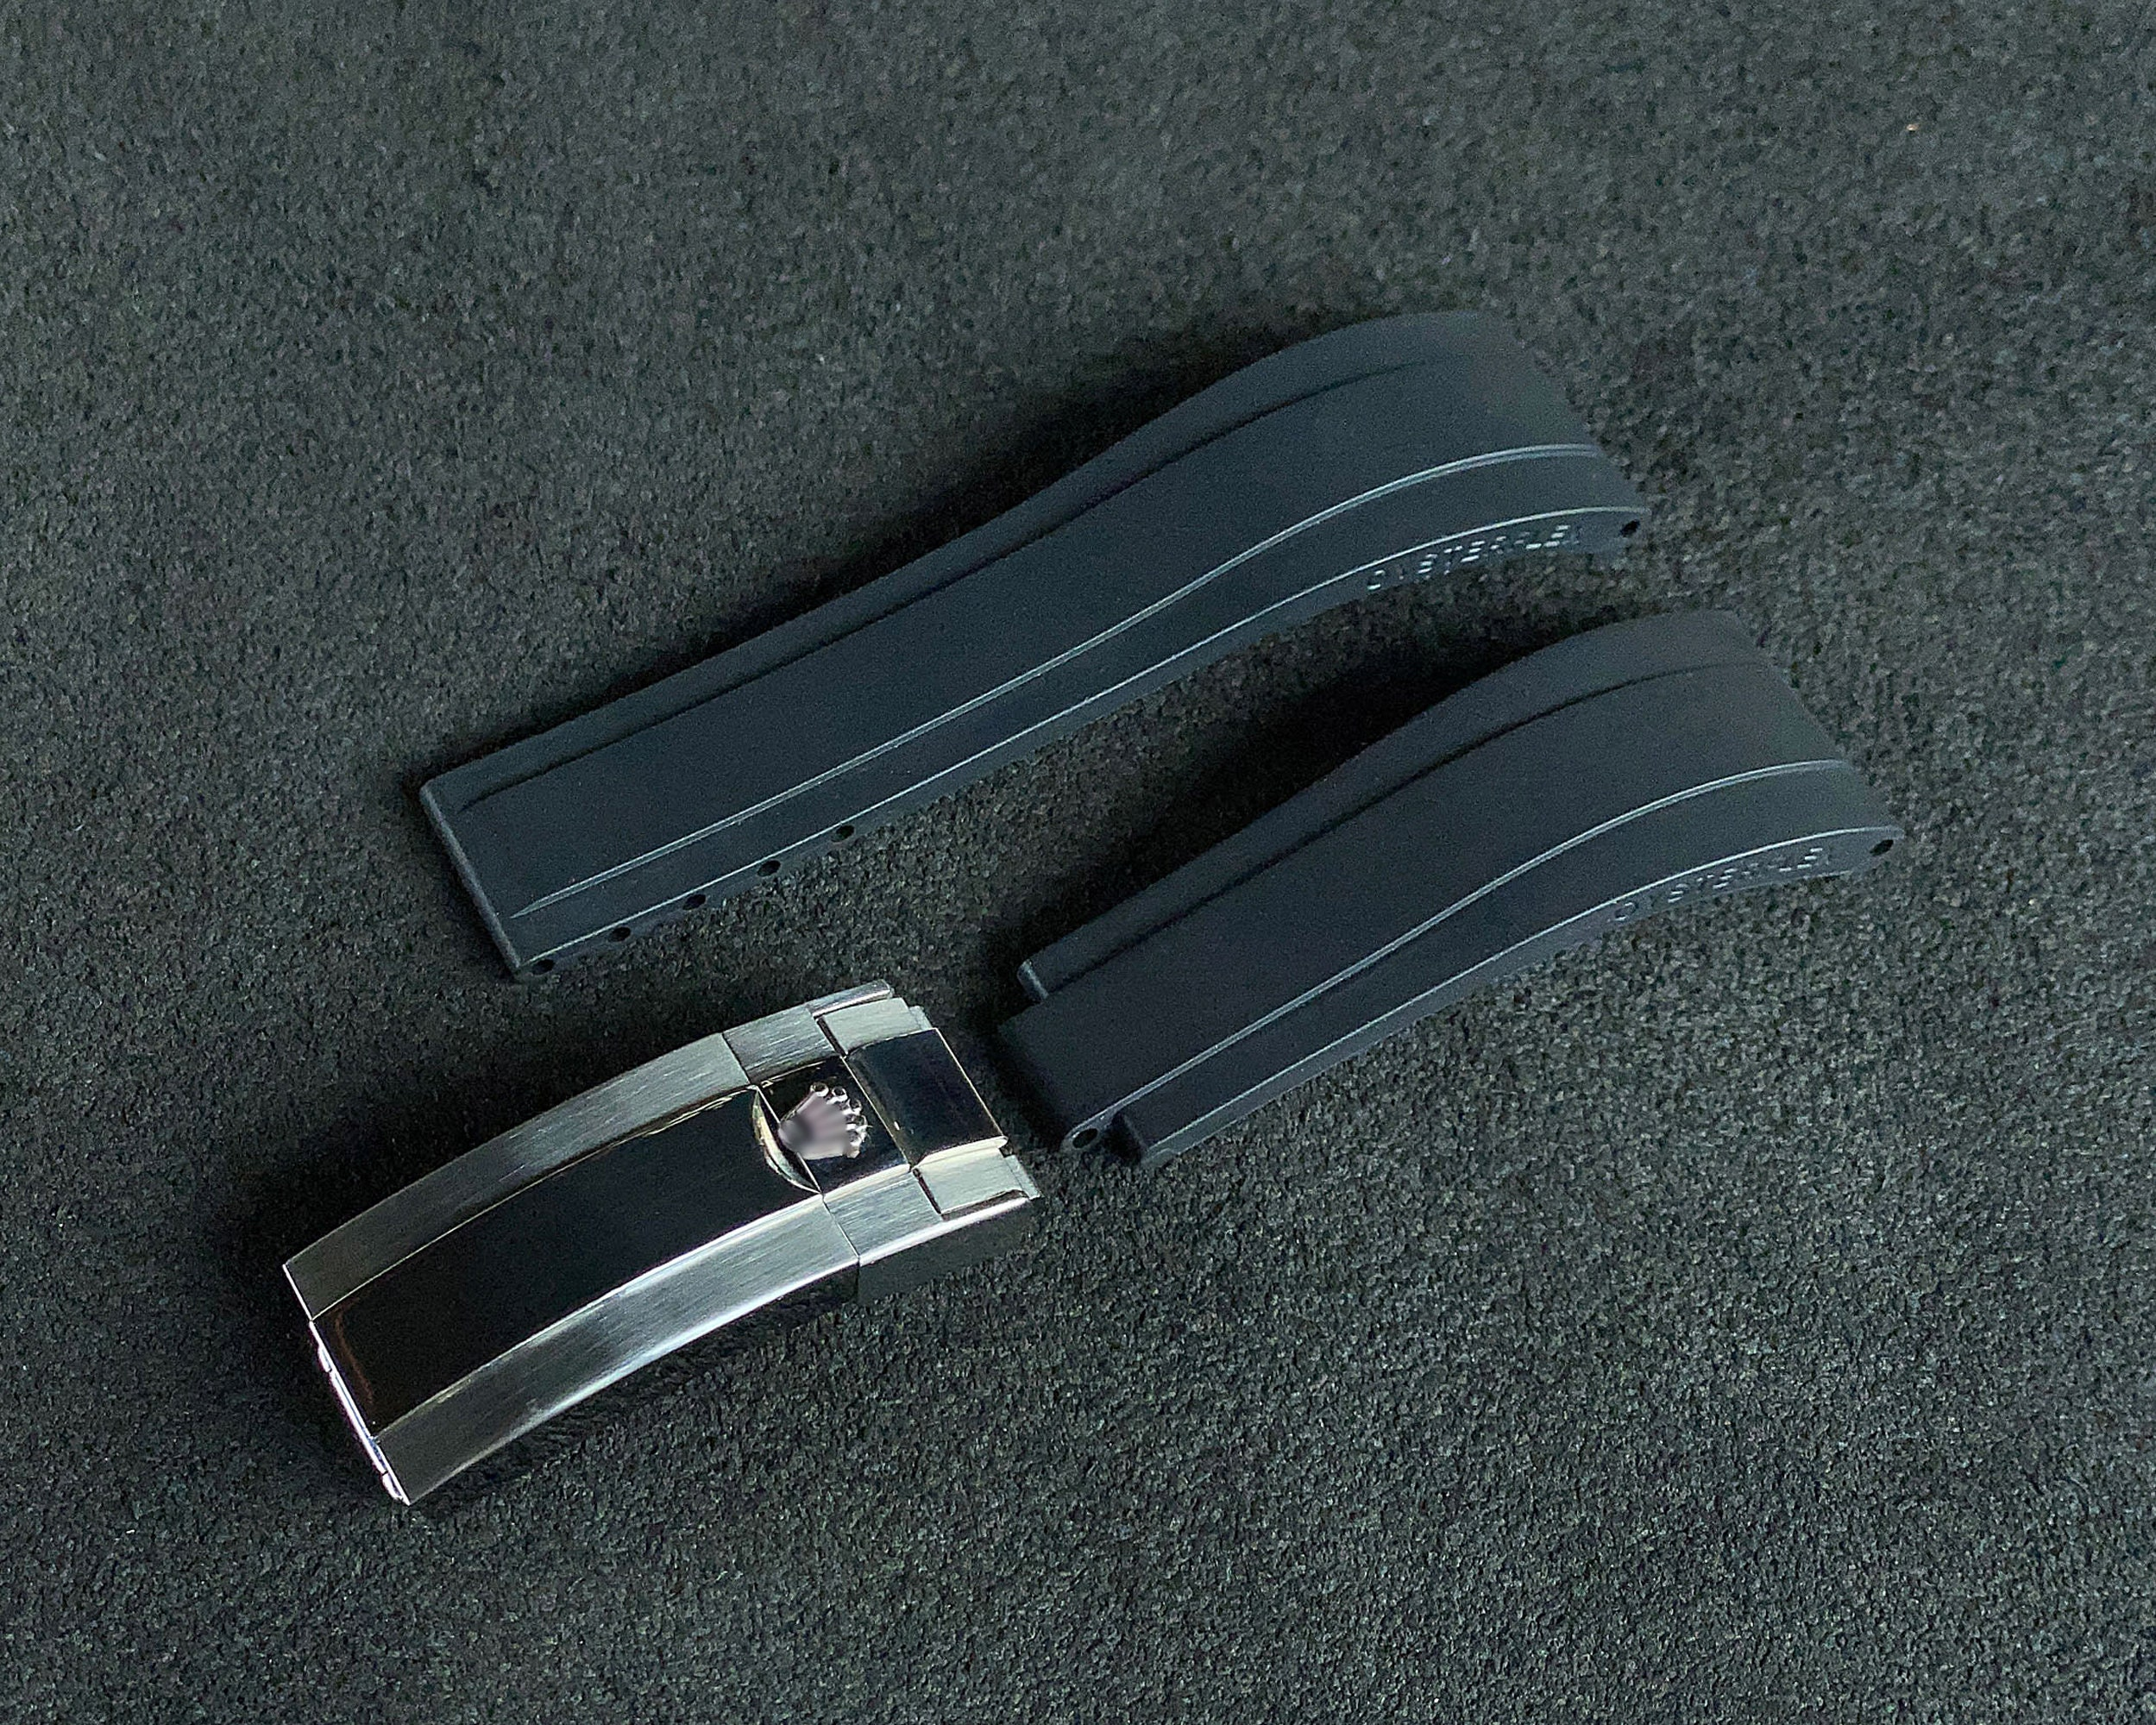 20mm Lug Width Oysterflex Style Replacement Rubber Watch Band Strap Color Black and Deployment Clasp For Daytona Submariner GMT Datejust